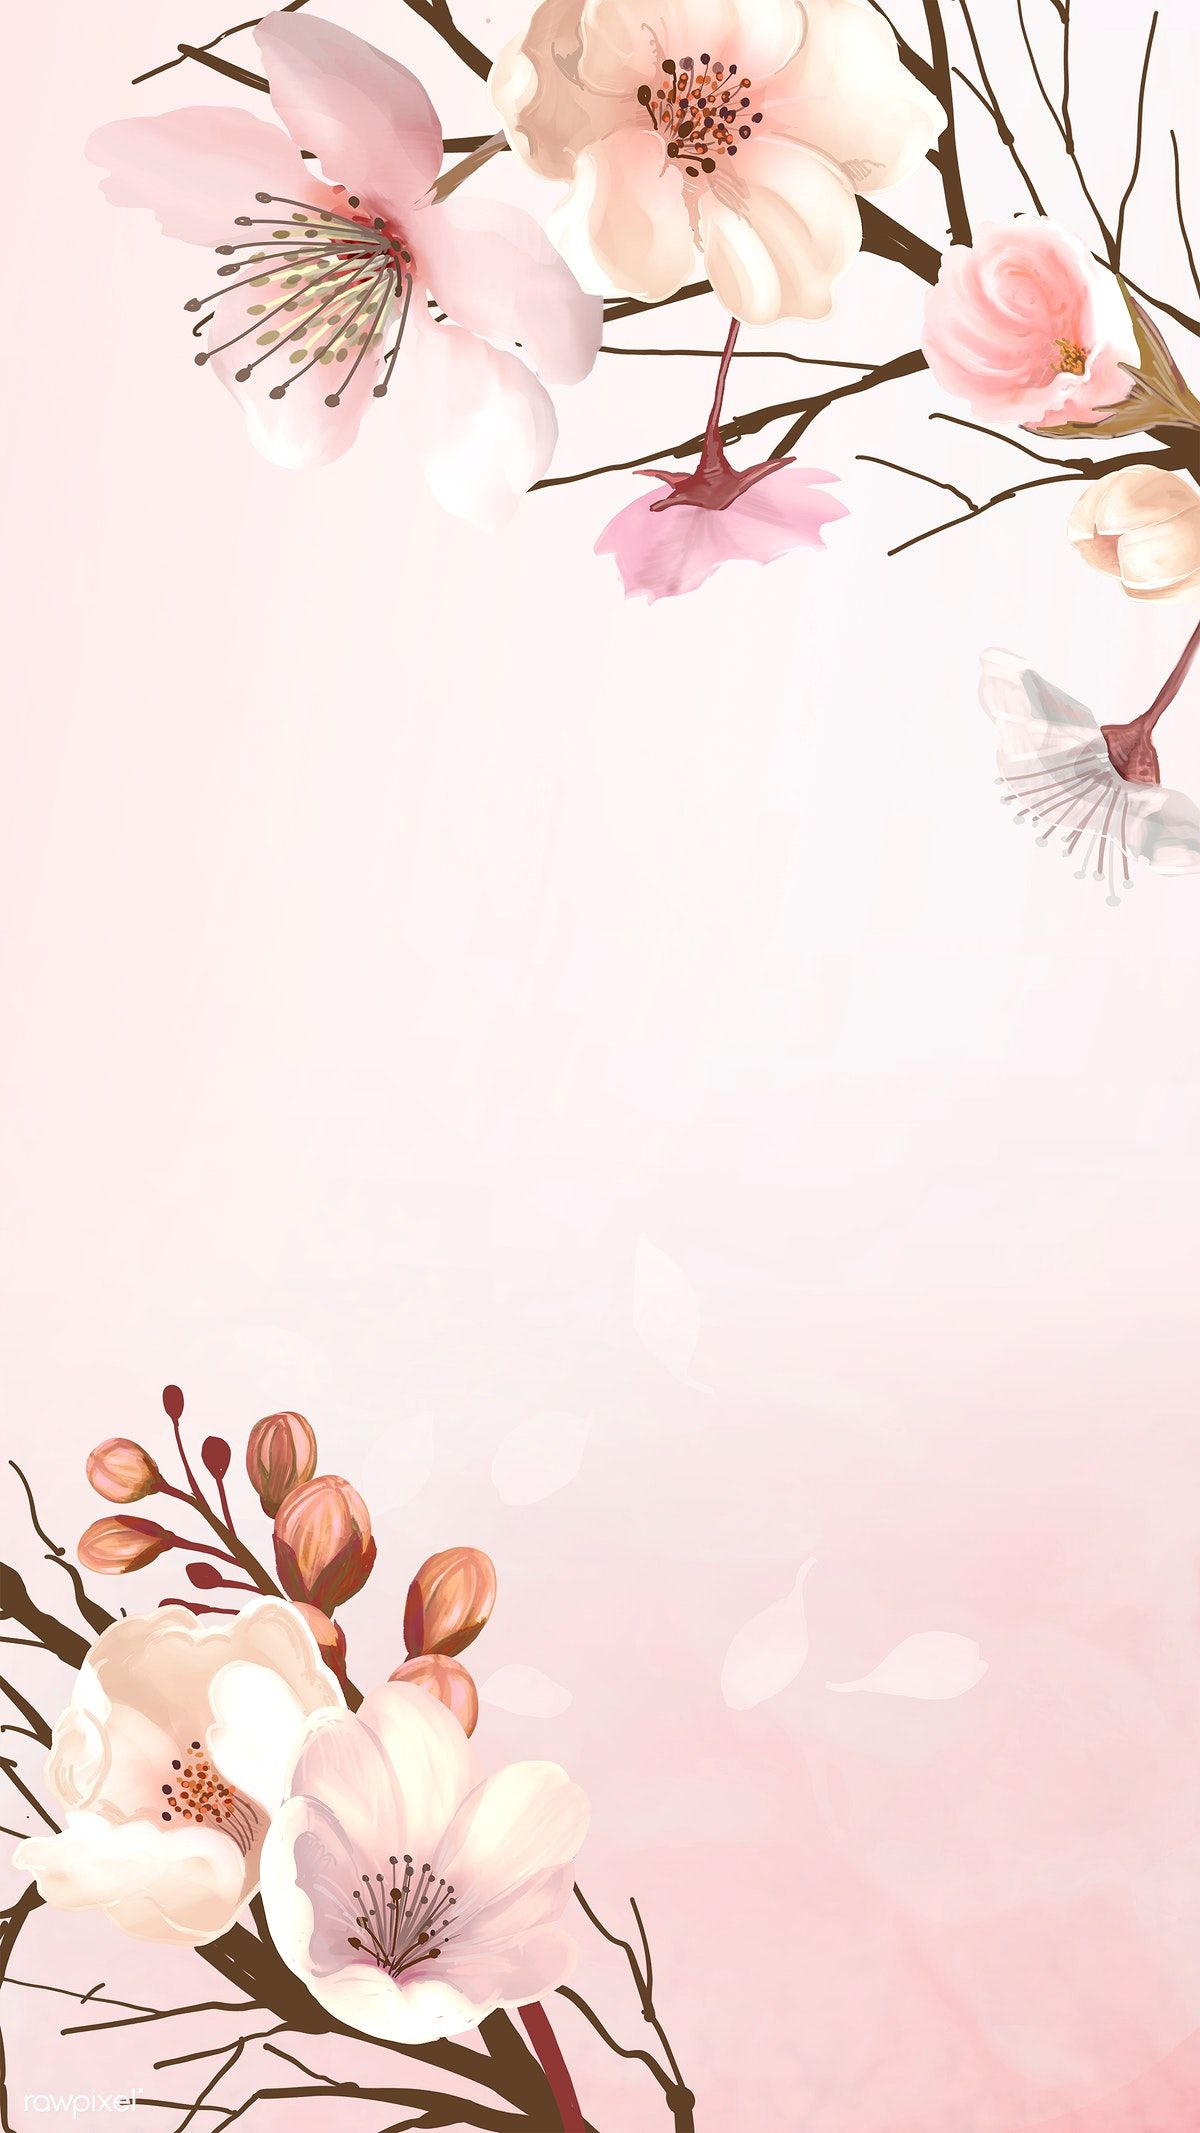 Download Premium Illustration Of Hand Drawn Cherry Blossoms On A Pink Flower Background Wallpaper Flower Illustration Pink Background